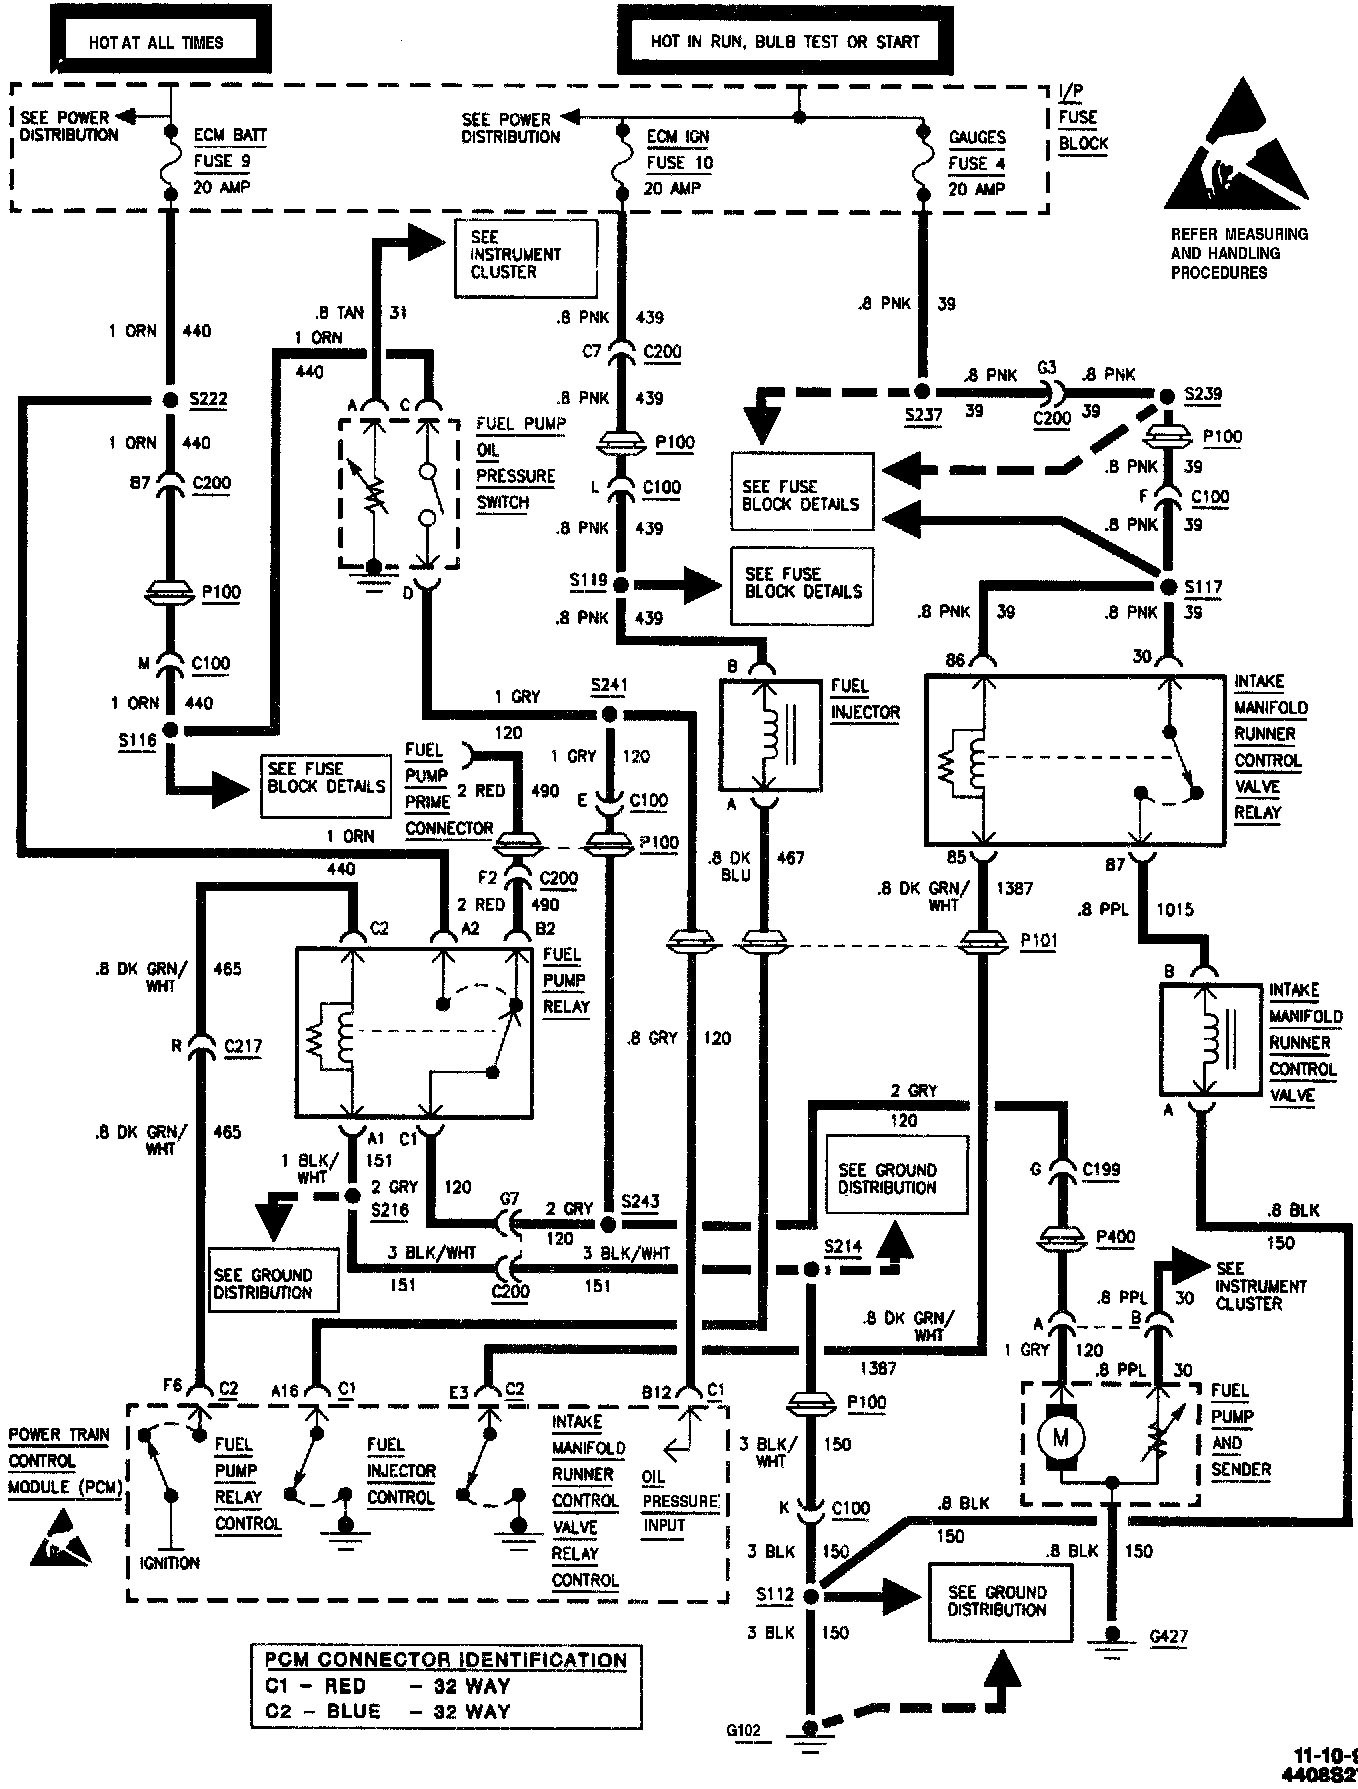 96 cherokee headlight switch wiring diagram